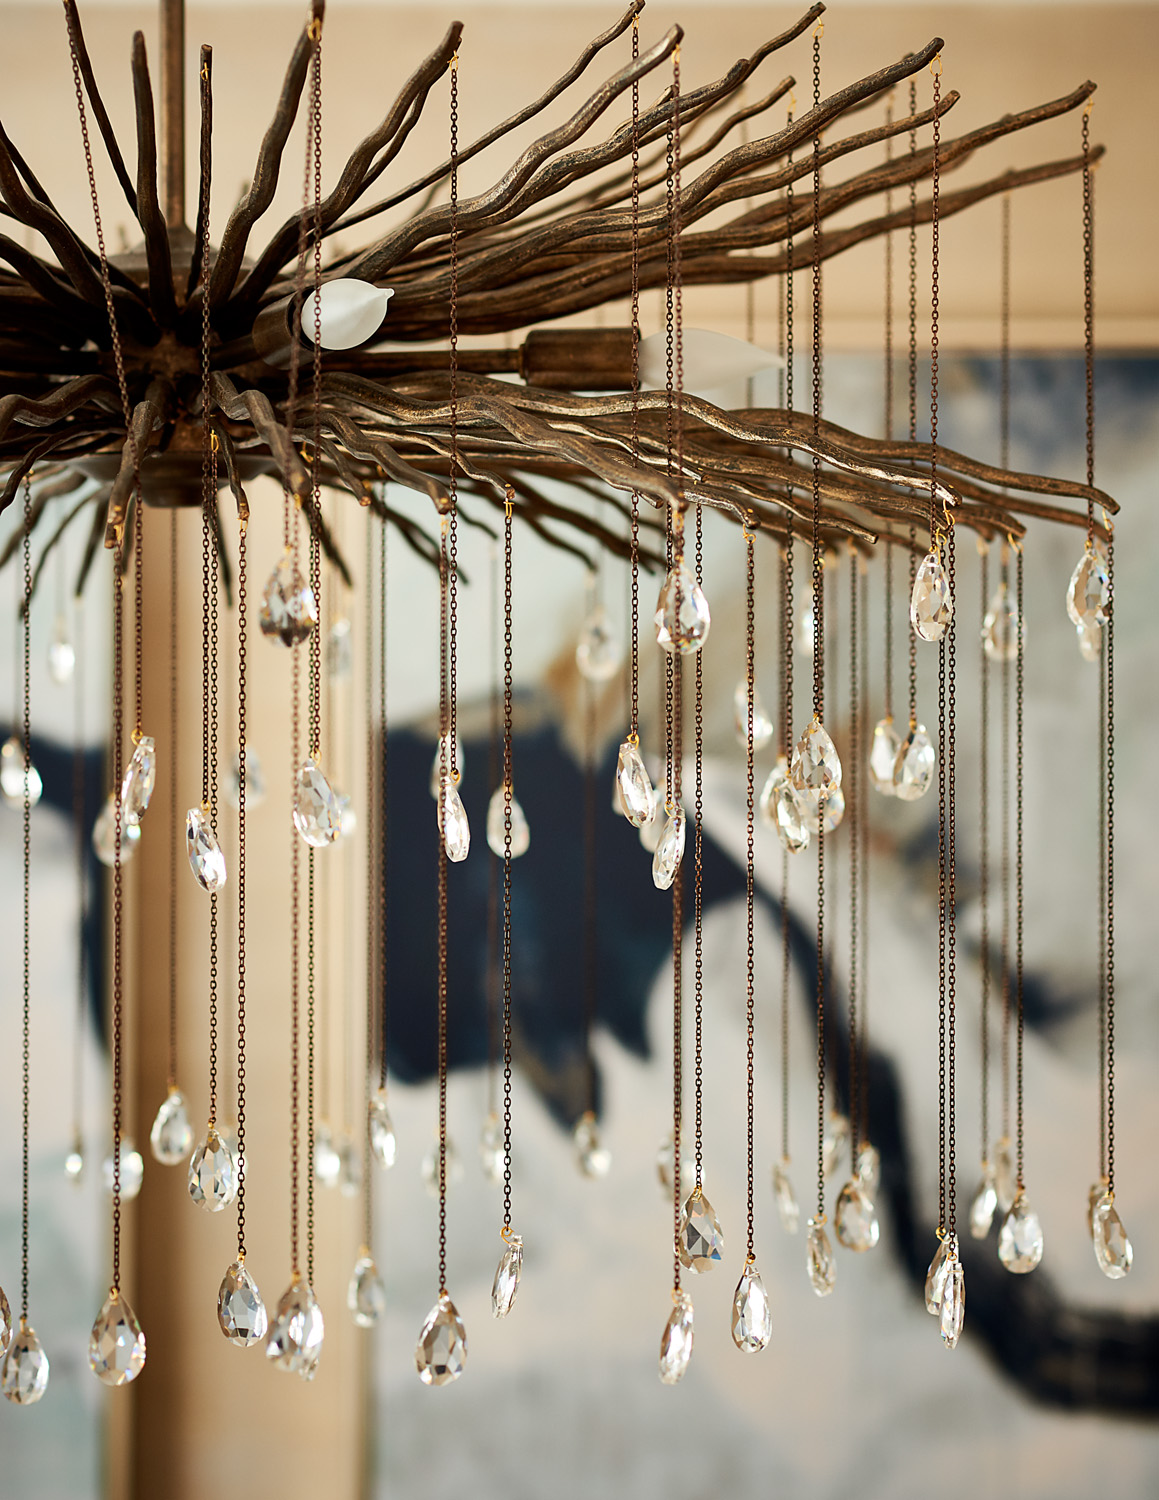 Chandelier with crystals by Currey and Company